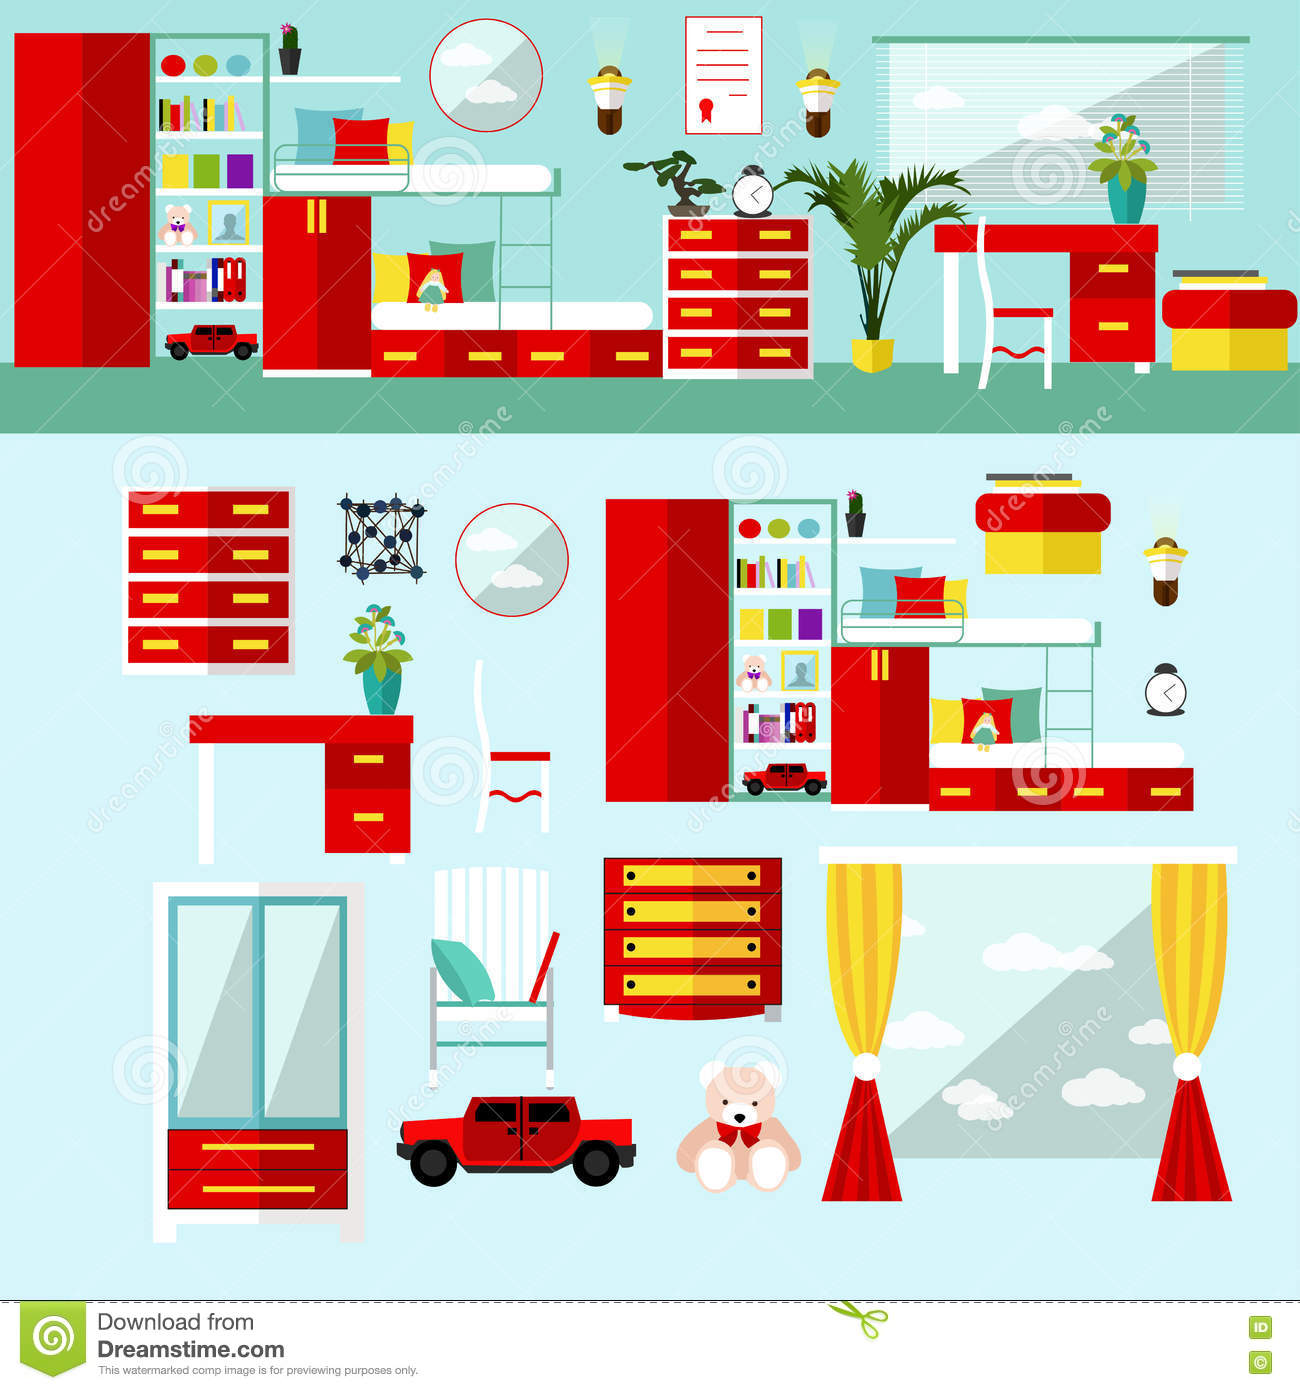 home design elements bedroom interior in flat style vector illustration 12115